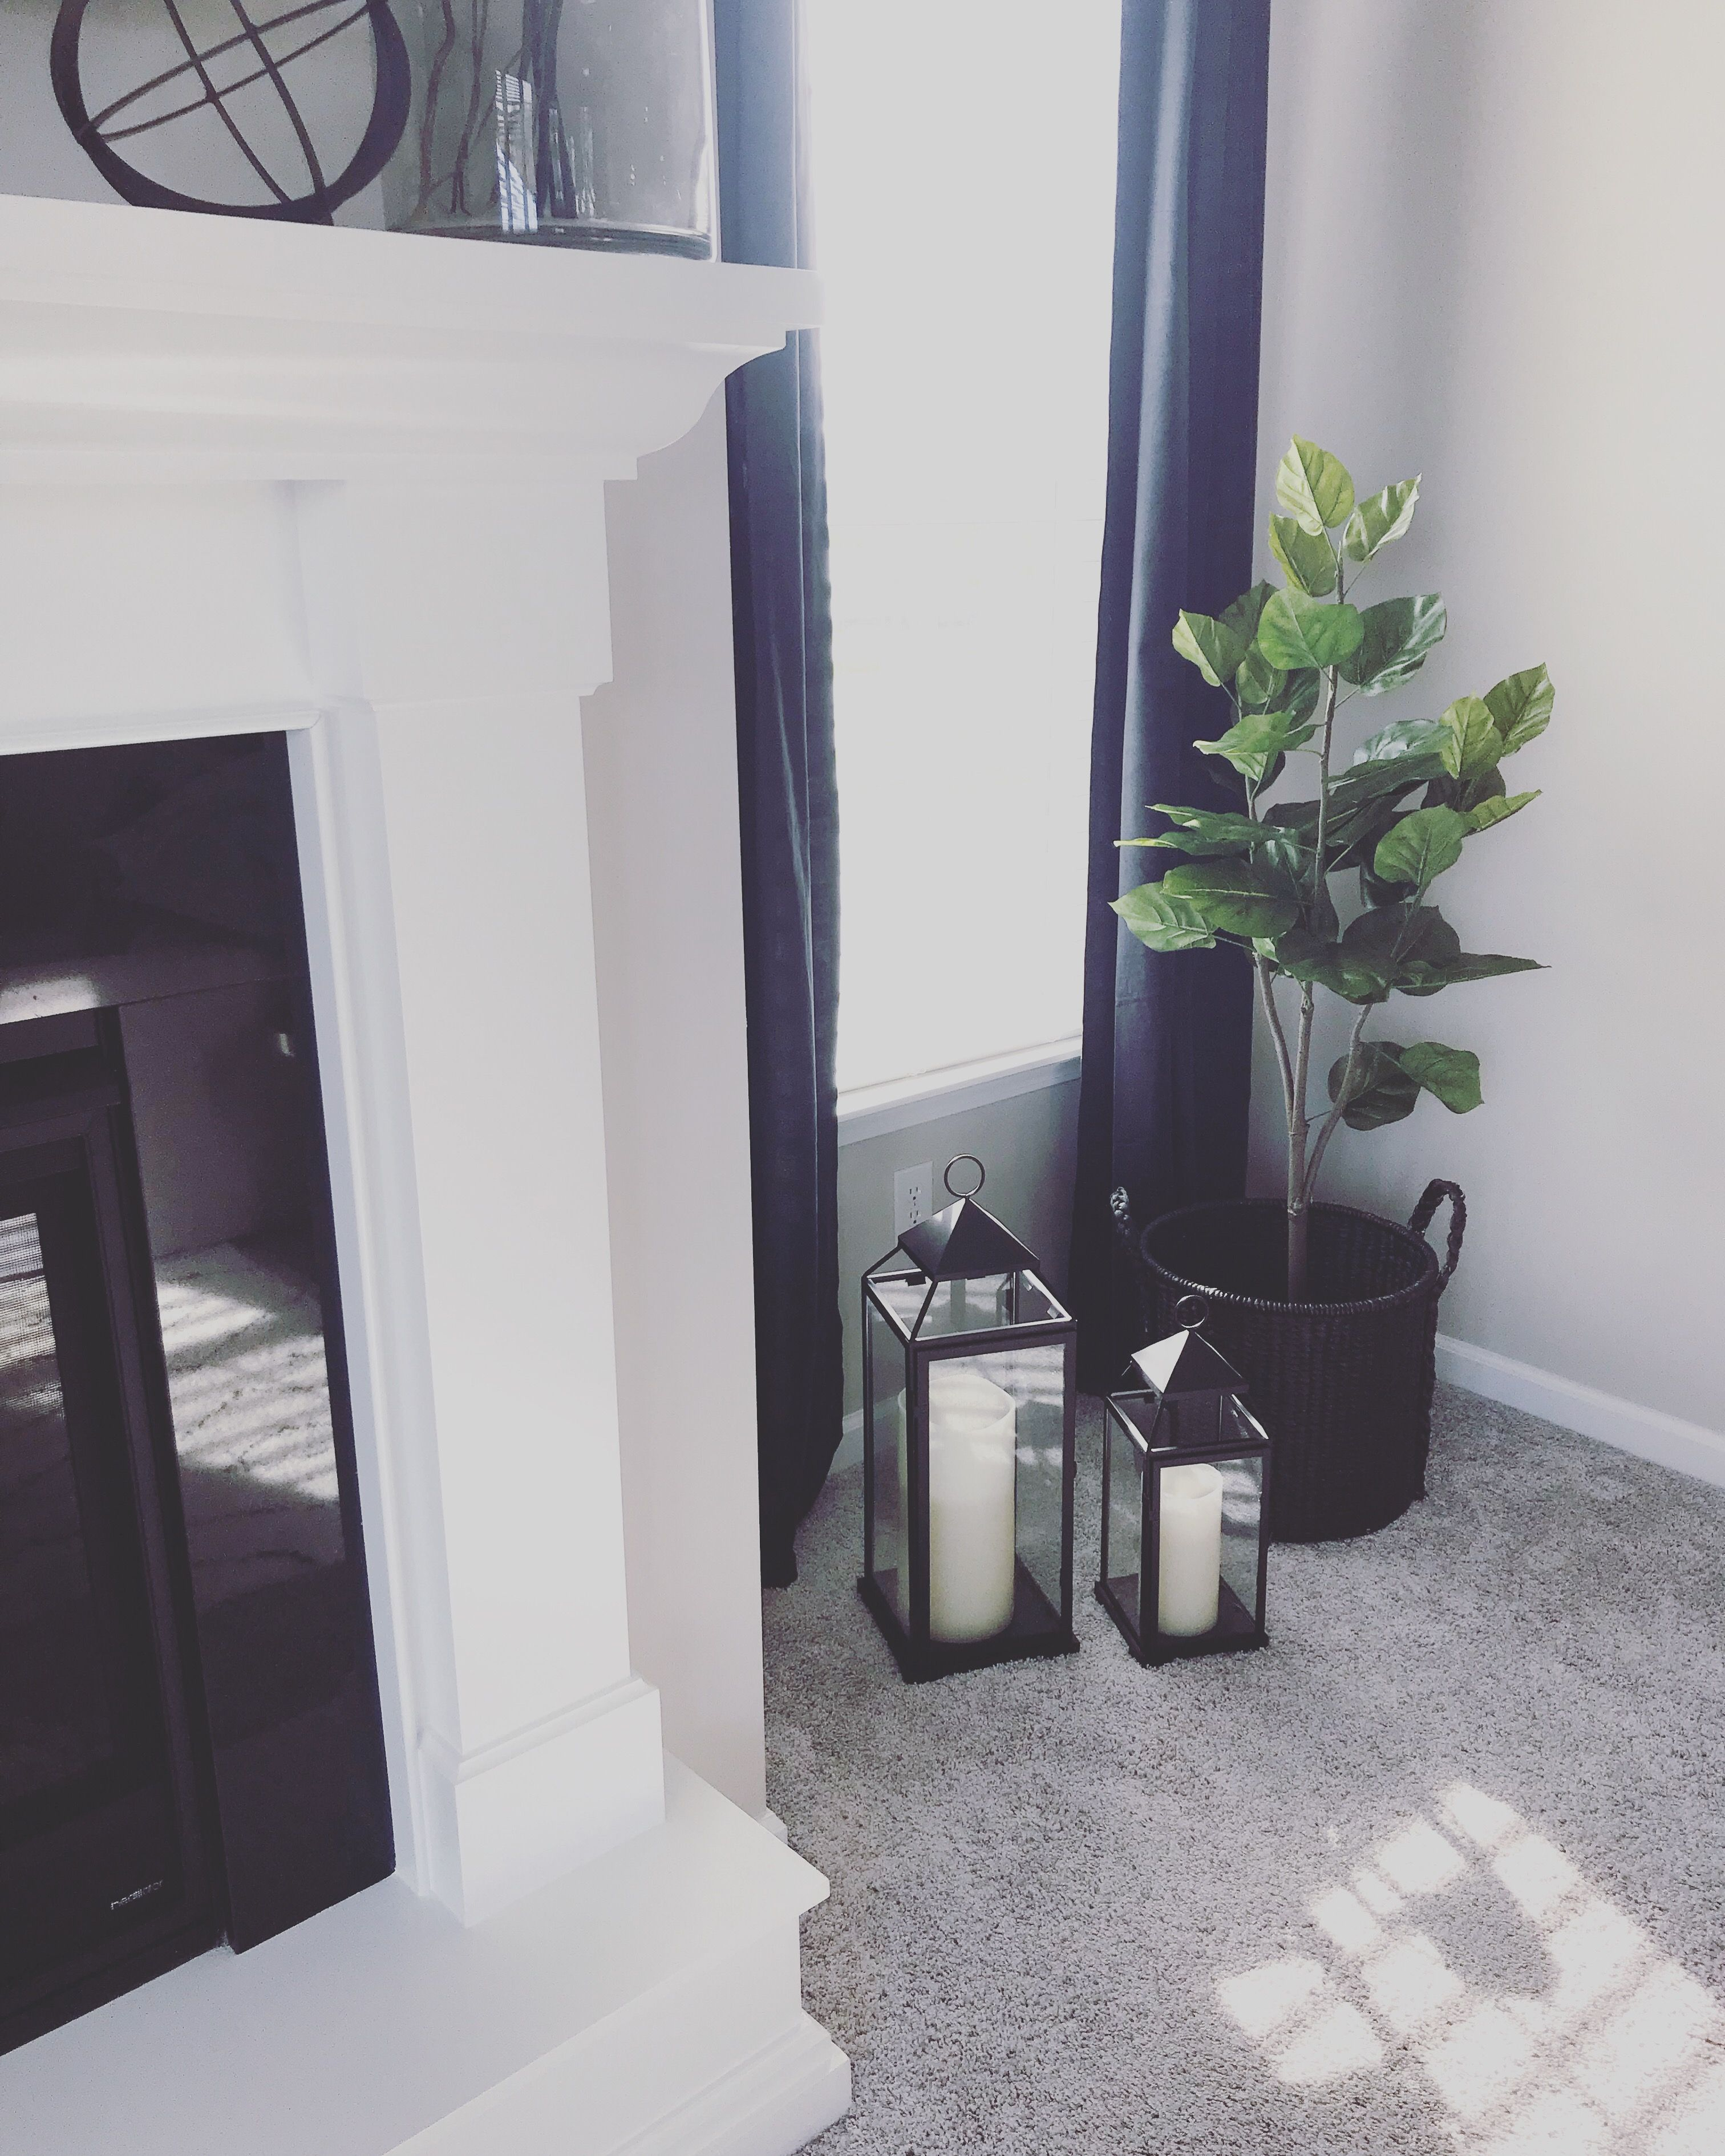 Lanterns And An Indoor Plant Can Fill Up An Empty Corner Of A Room Perfectly Homesuburbanhome Corner Decor Living Room Corner Lantern Decor Living